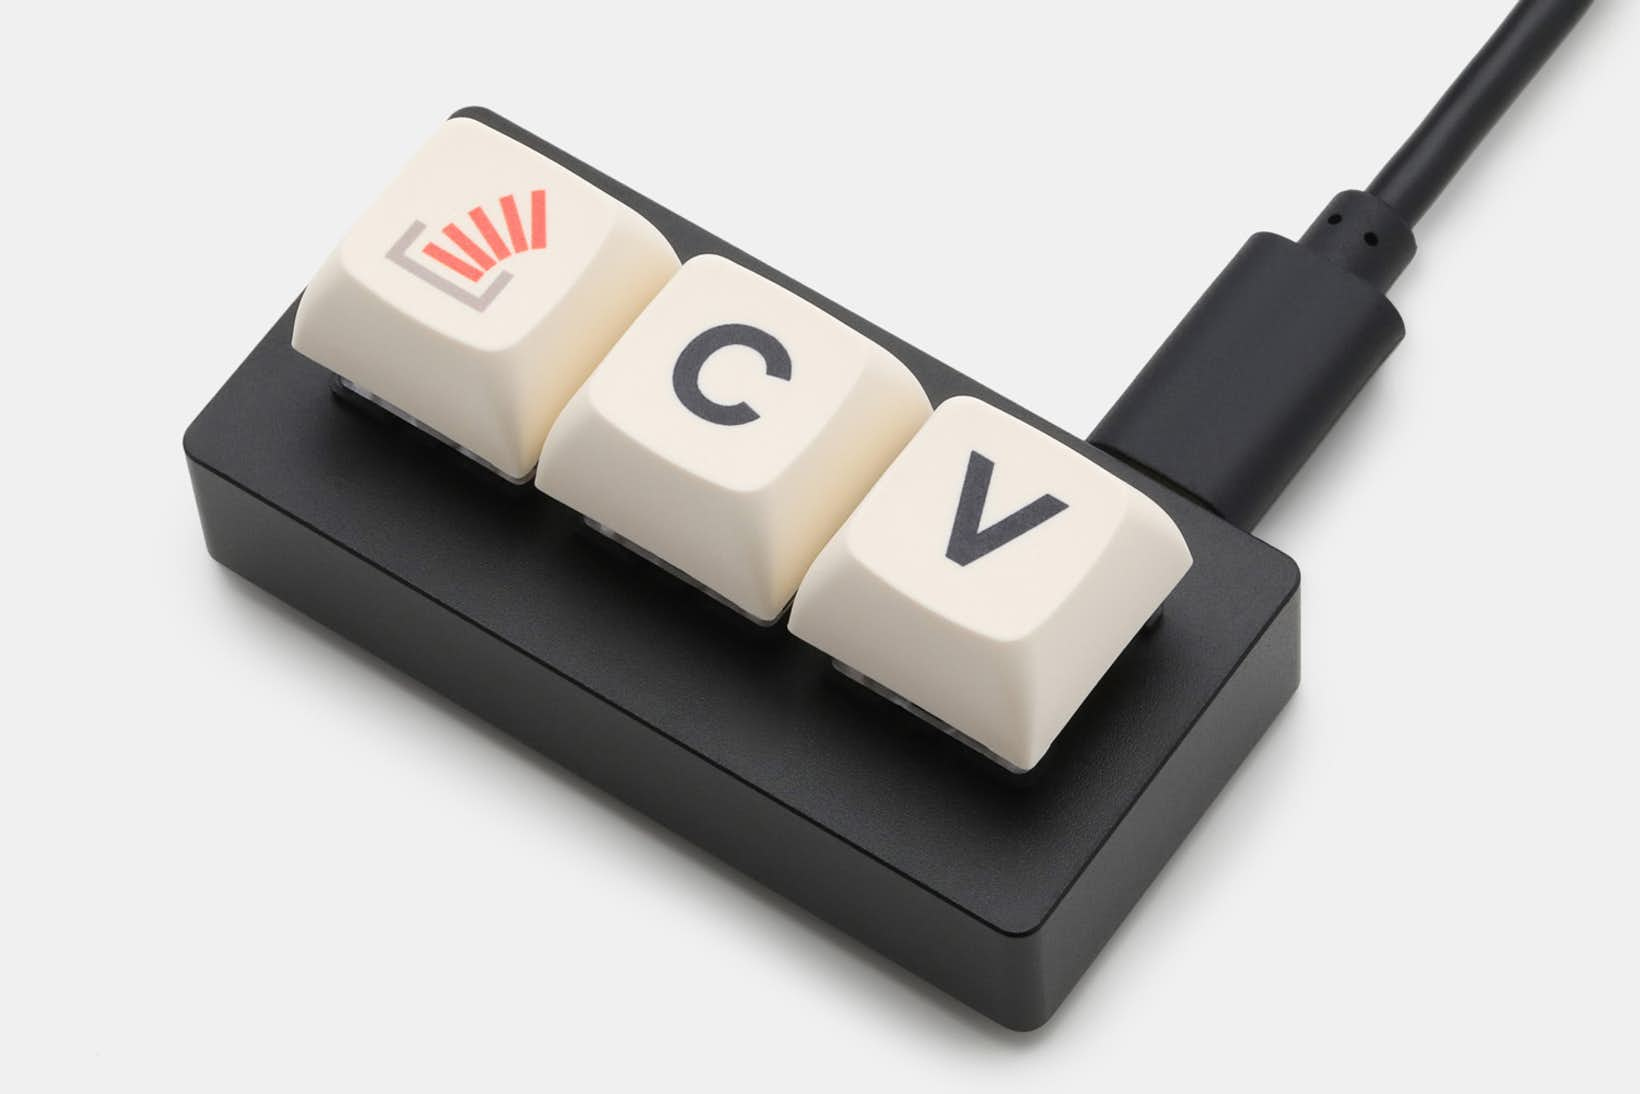 A dedicated macropad for copying and pasting code from Stack Overflow.